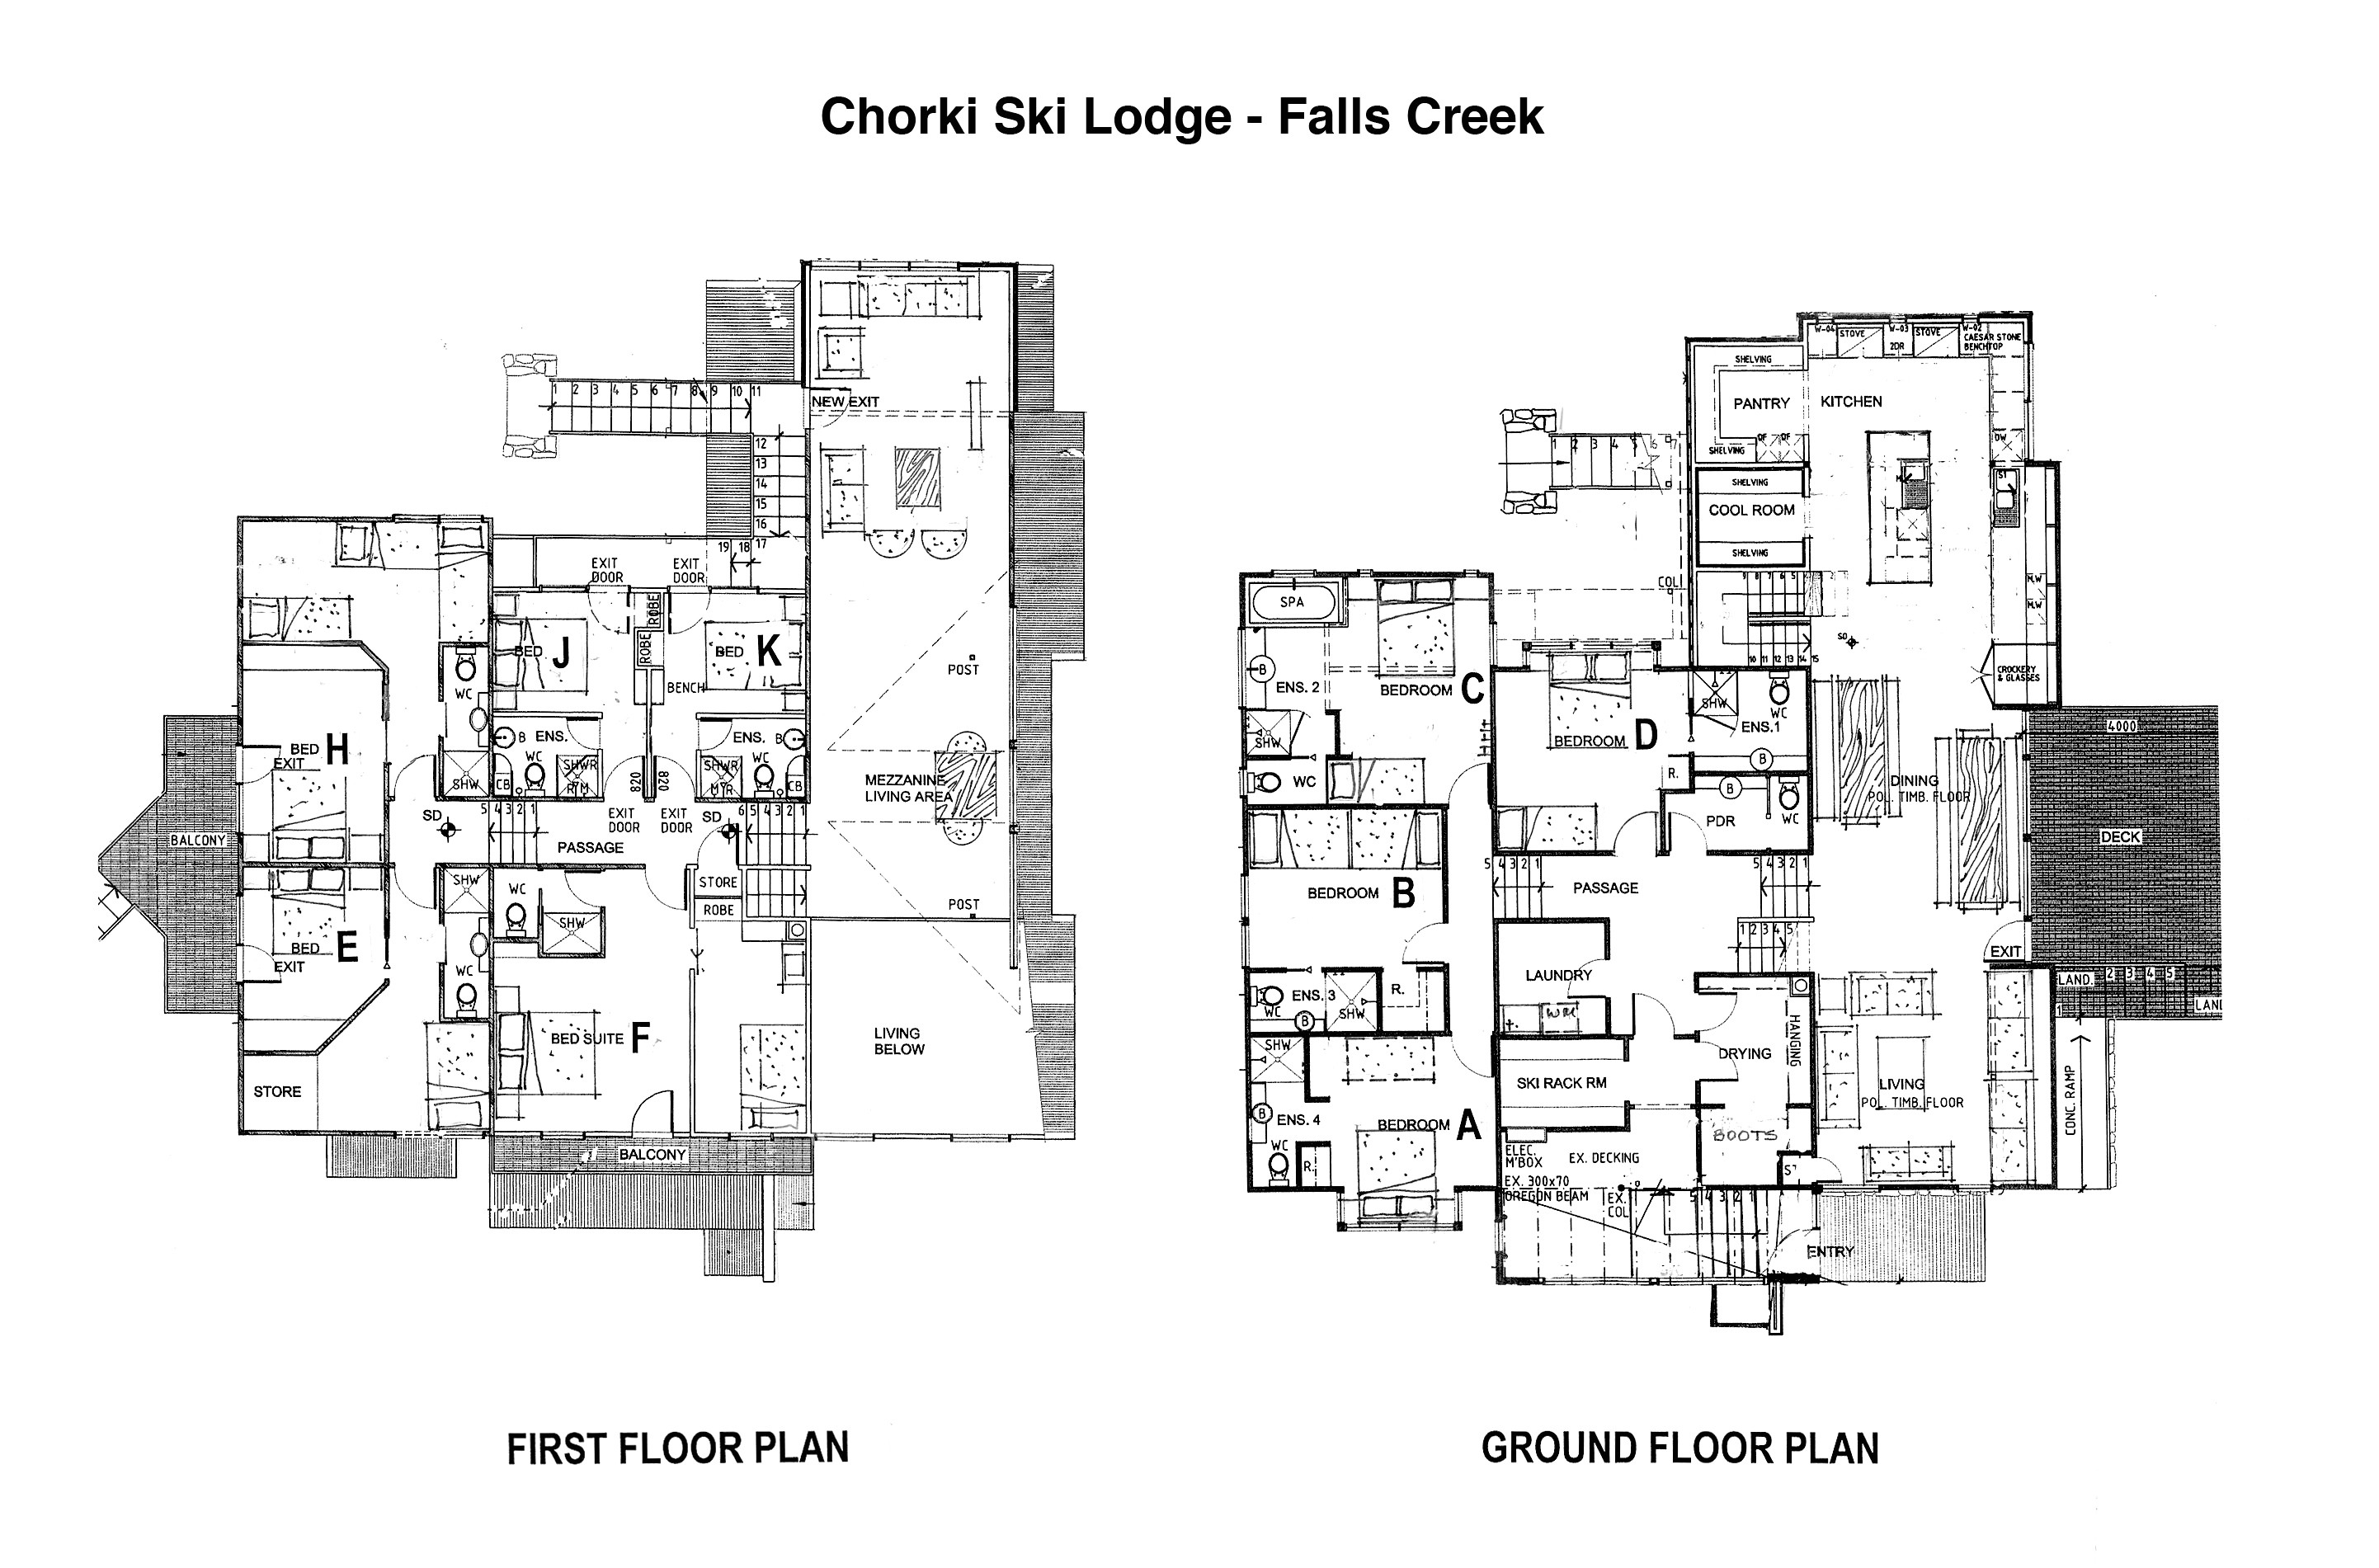 ski lodge home plans best of ski lodge house plans stunning image highest clarity floor plan